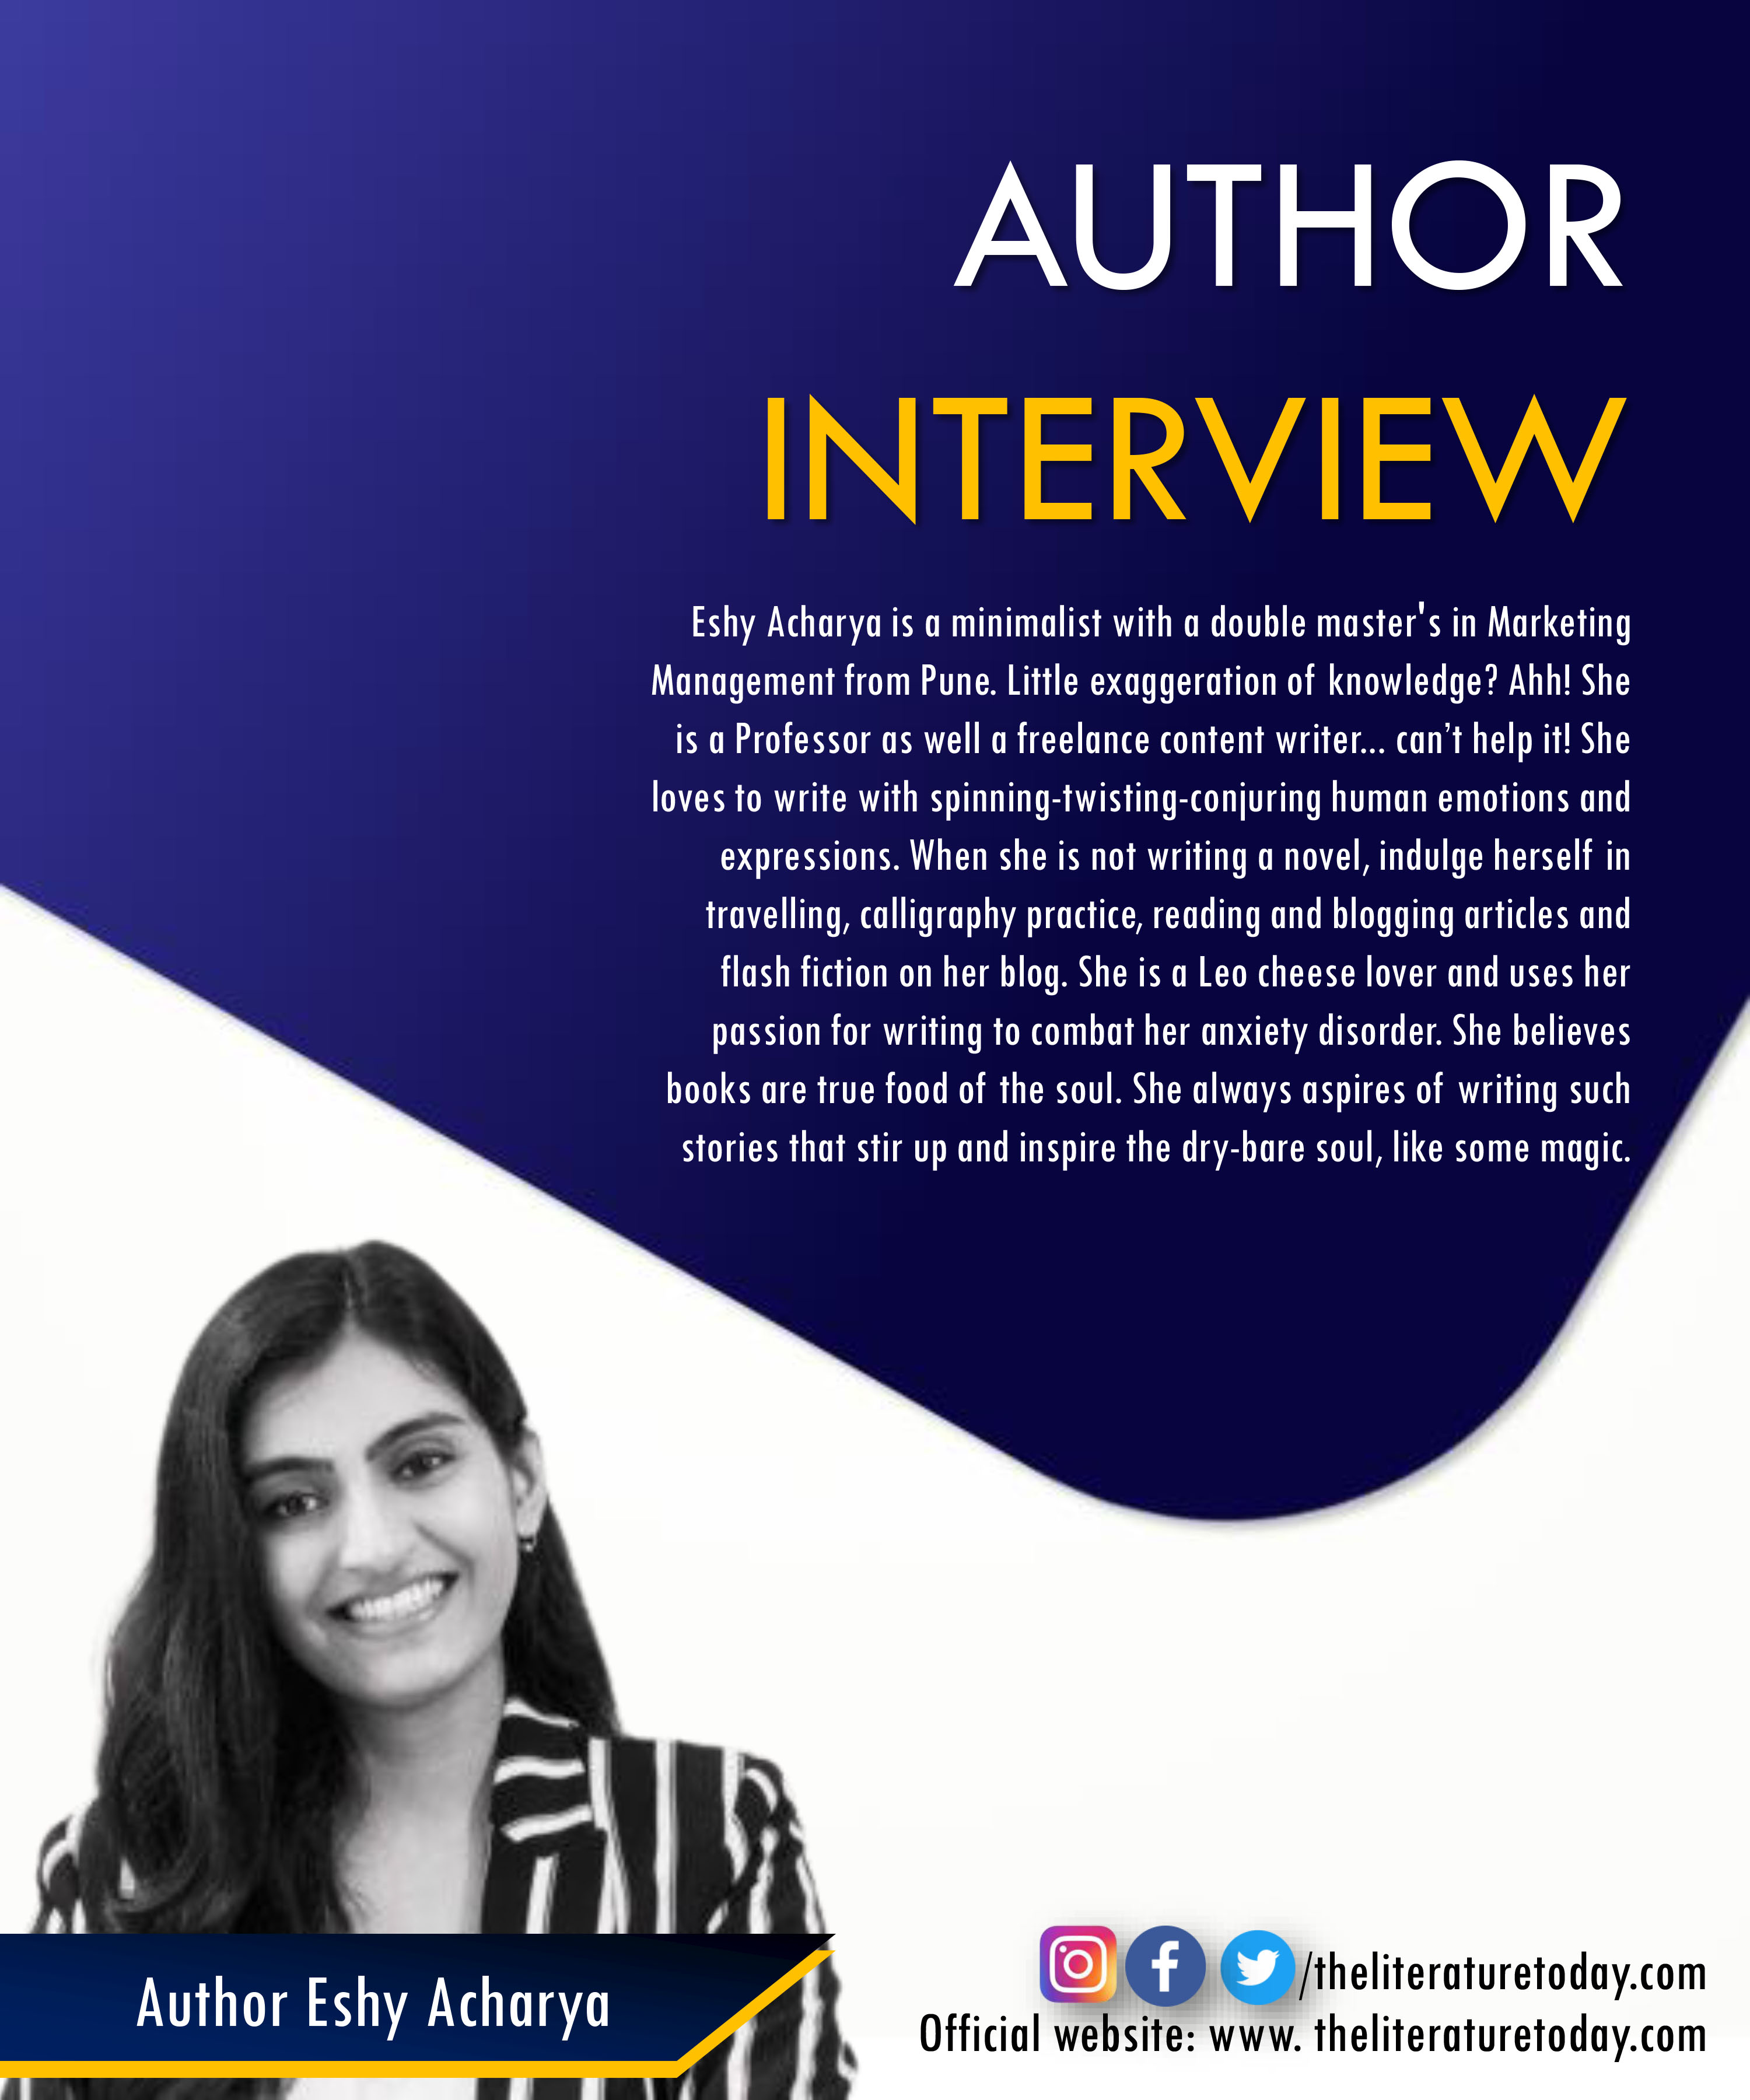 Interview with Author Eshy Acharya | The Literature Today